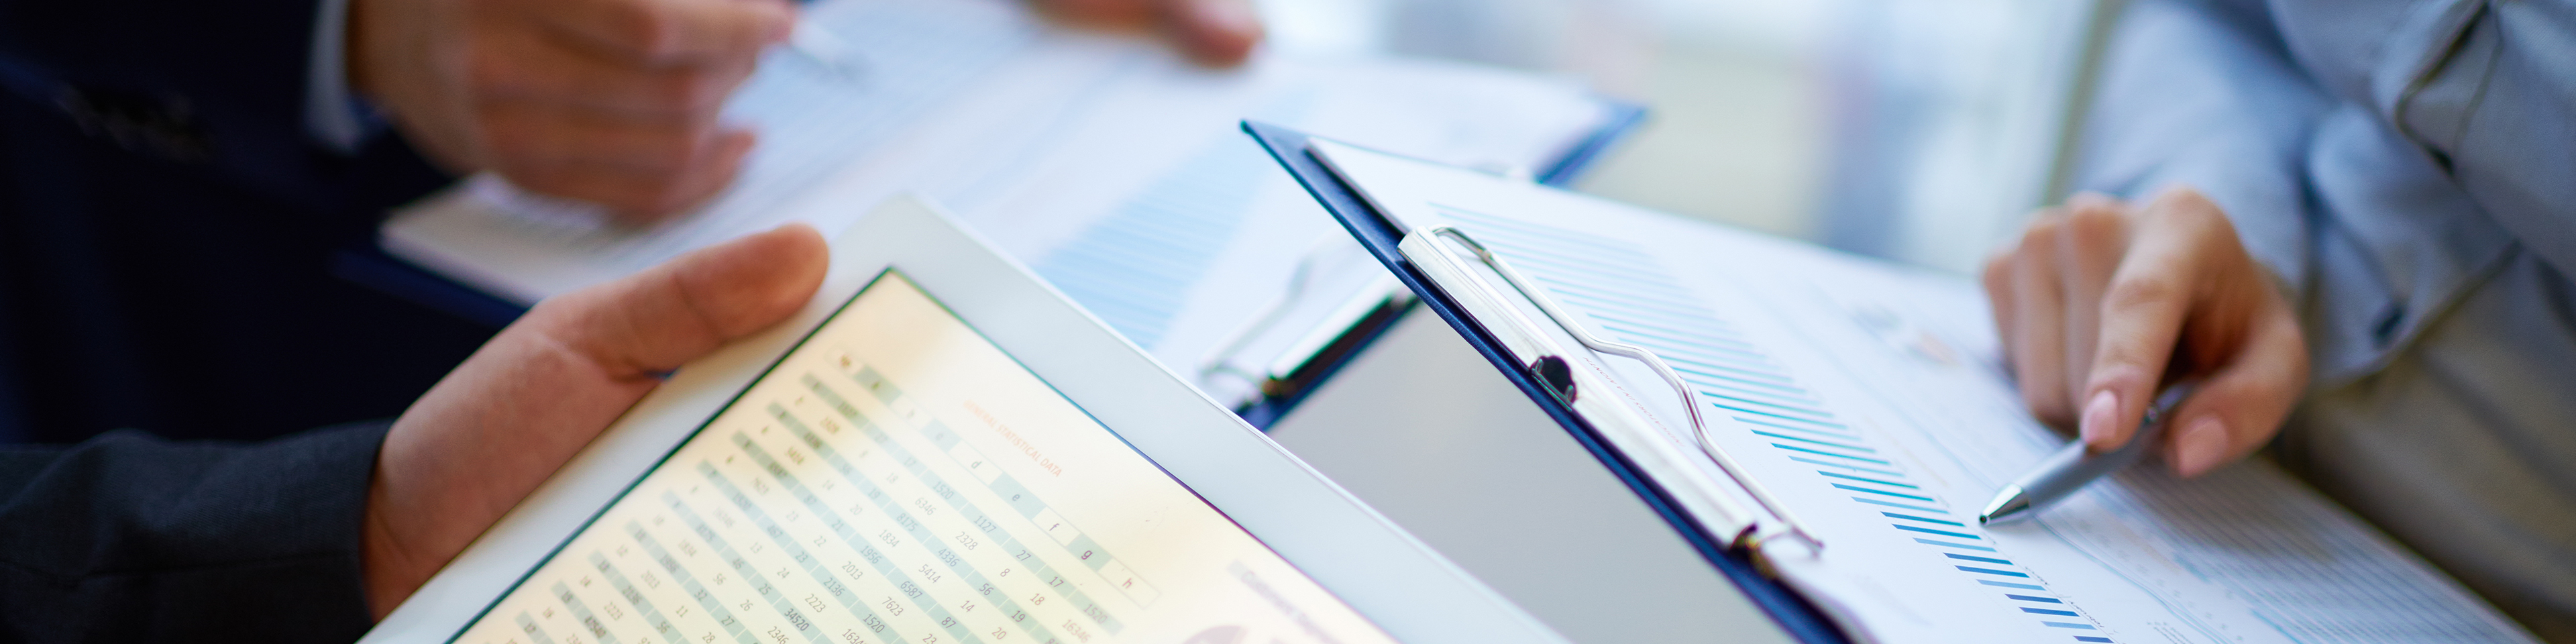 75% of Your Audits aren't Based on Data. Does the Audit Committee Know?